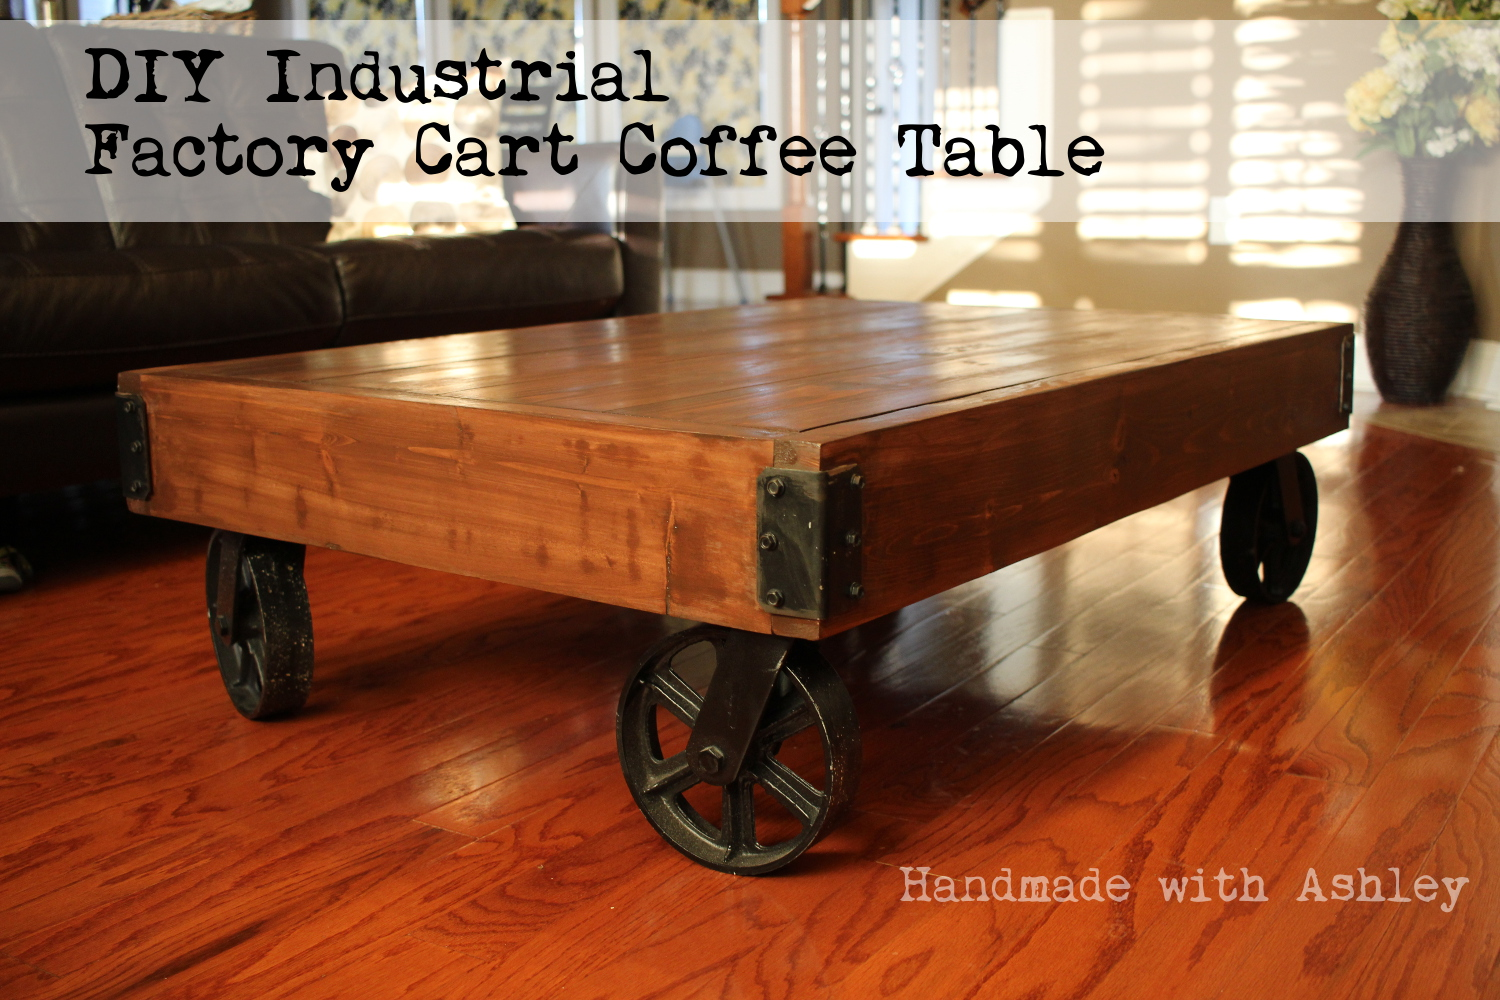 Coffee Table Plans.Diy Industrial Factory Cart Coffee Table Plans By Rogue Engineer